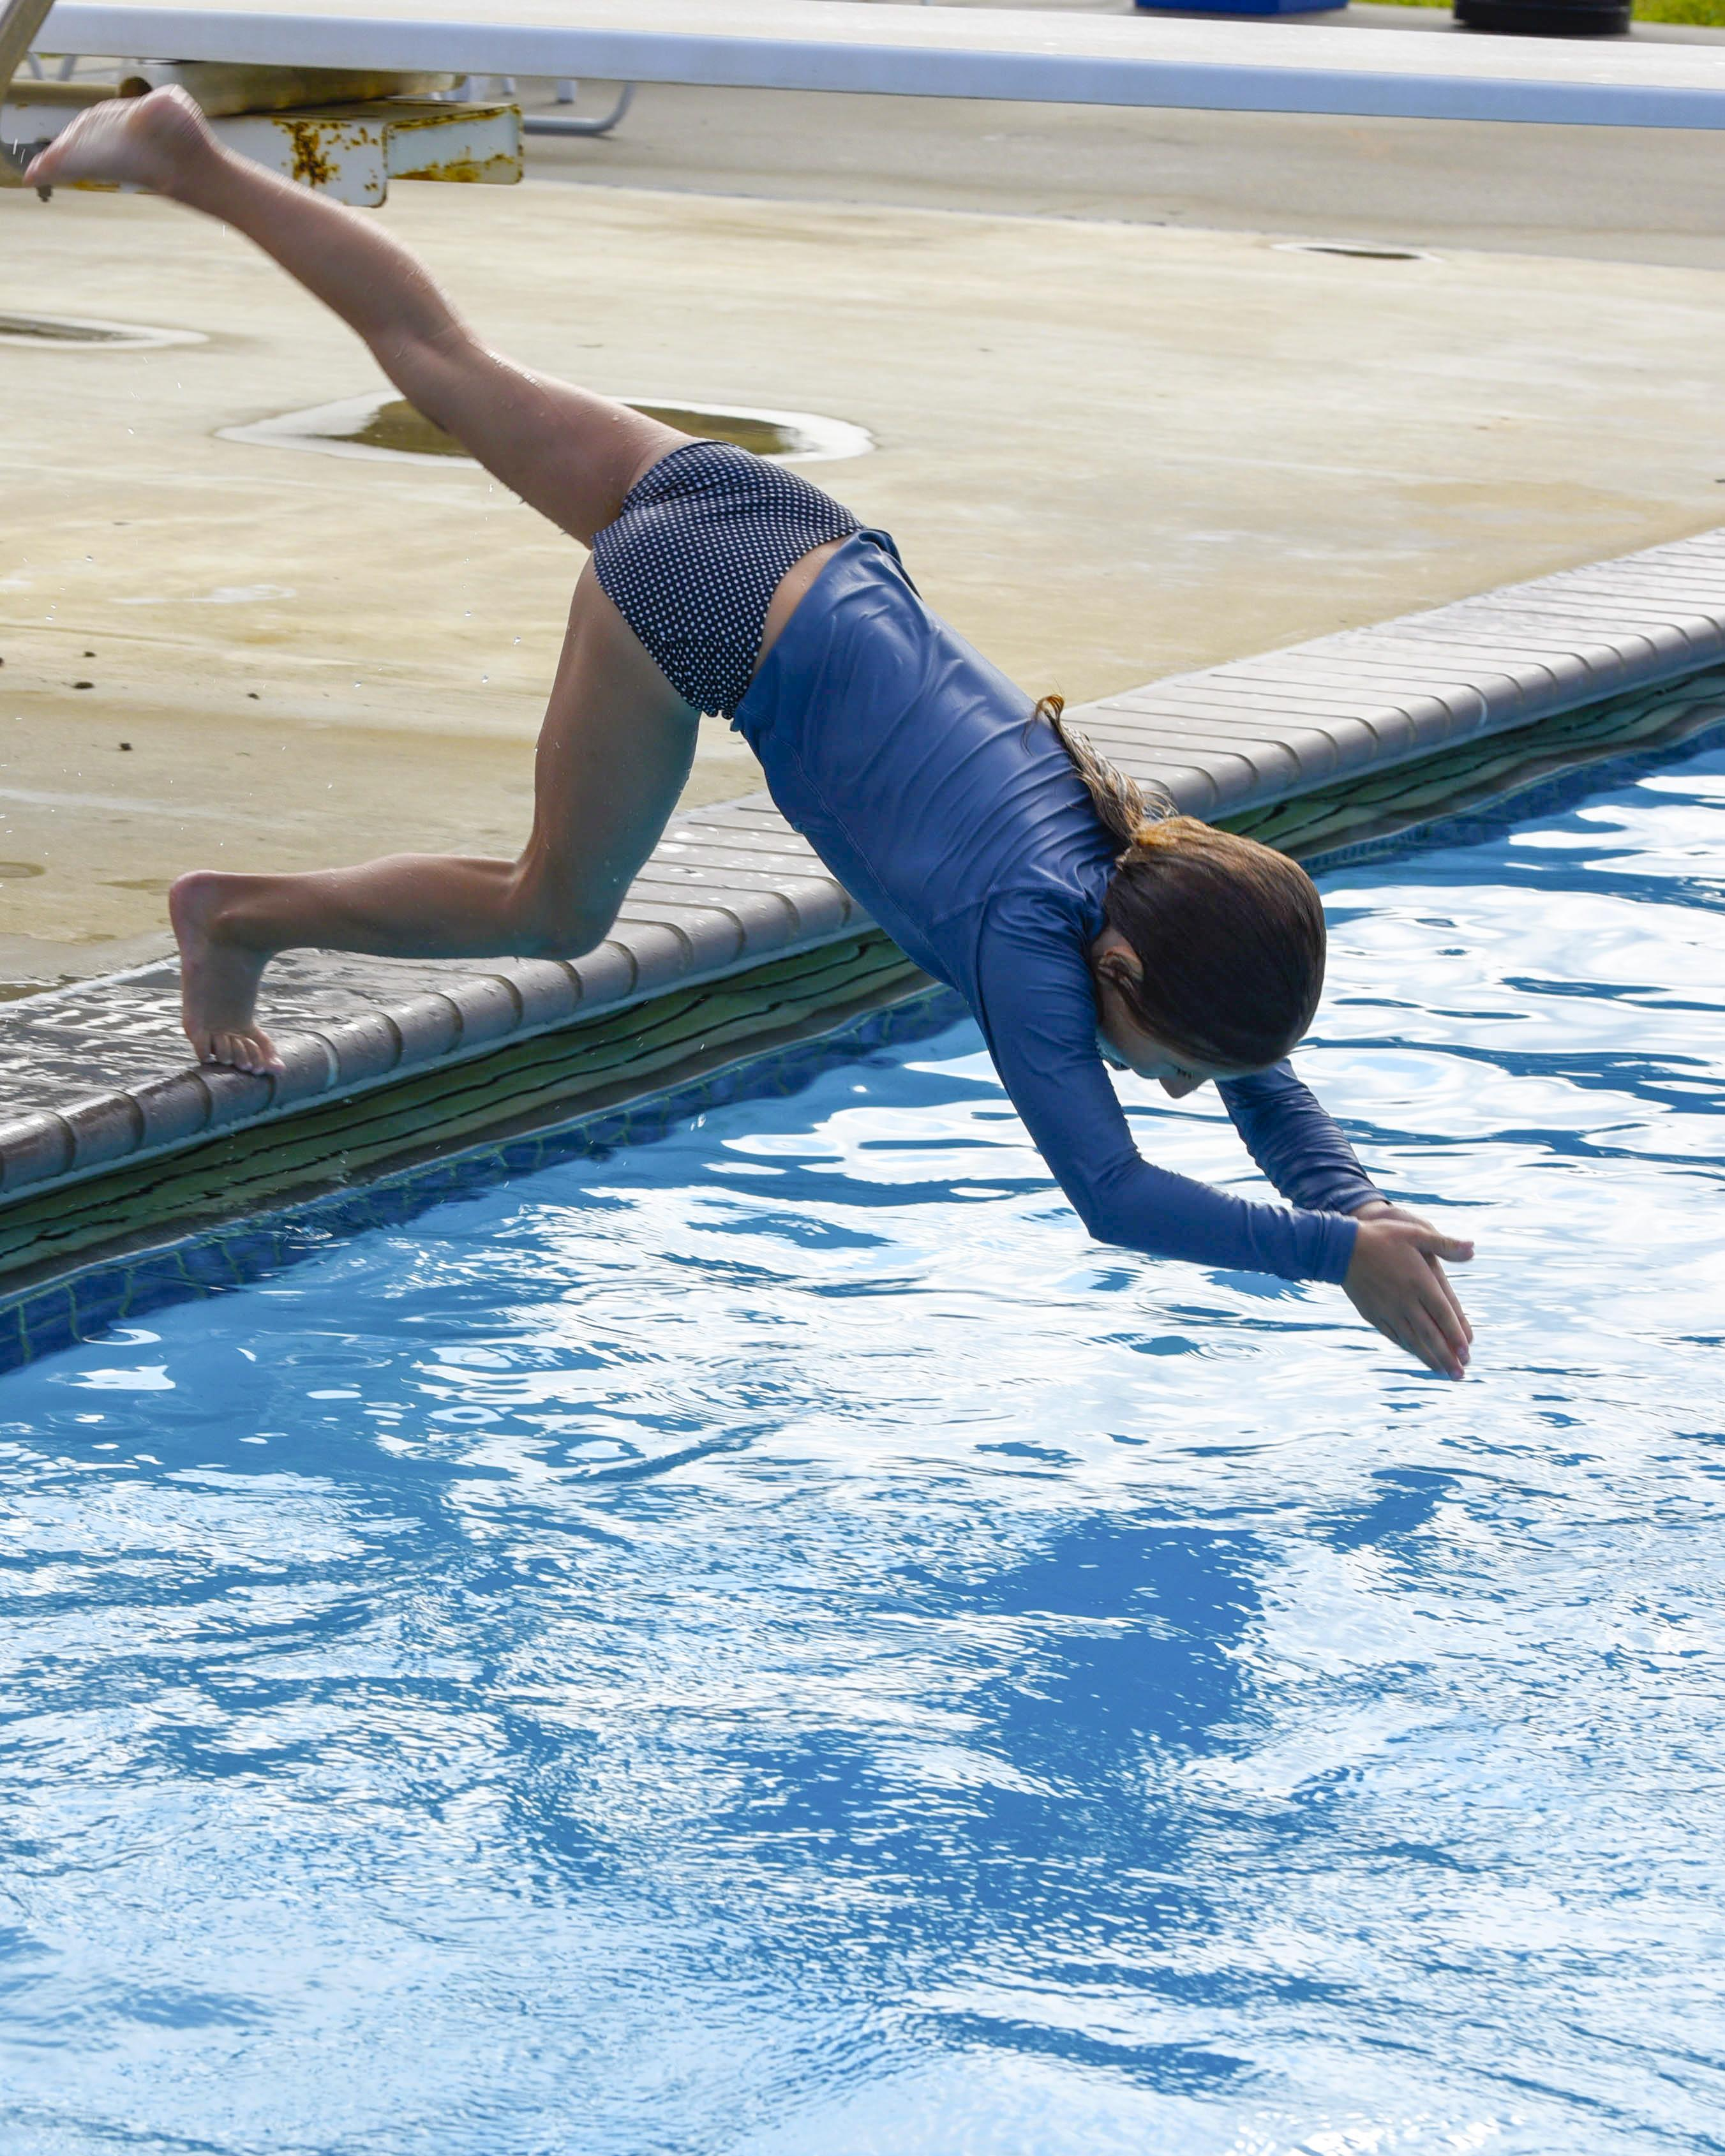 JBA Youth Learn Swim Safety > Joint Base Andrews > Article